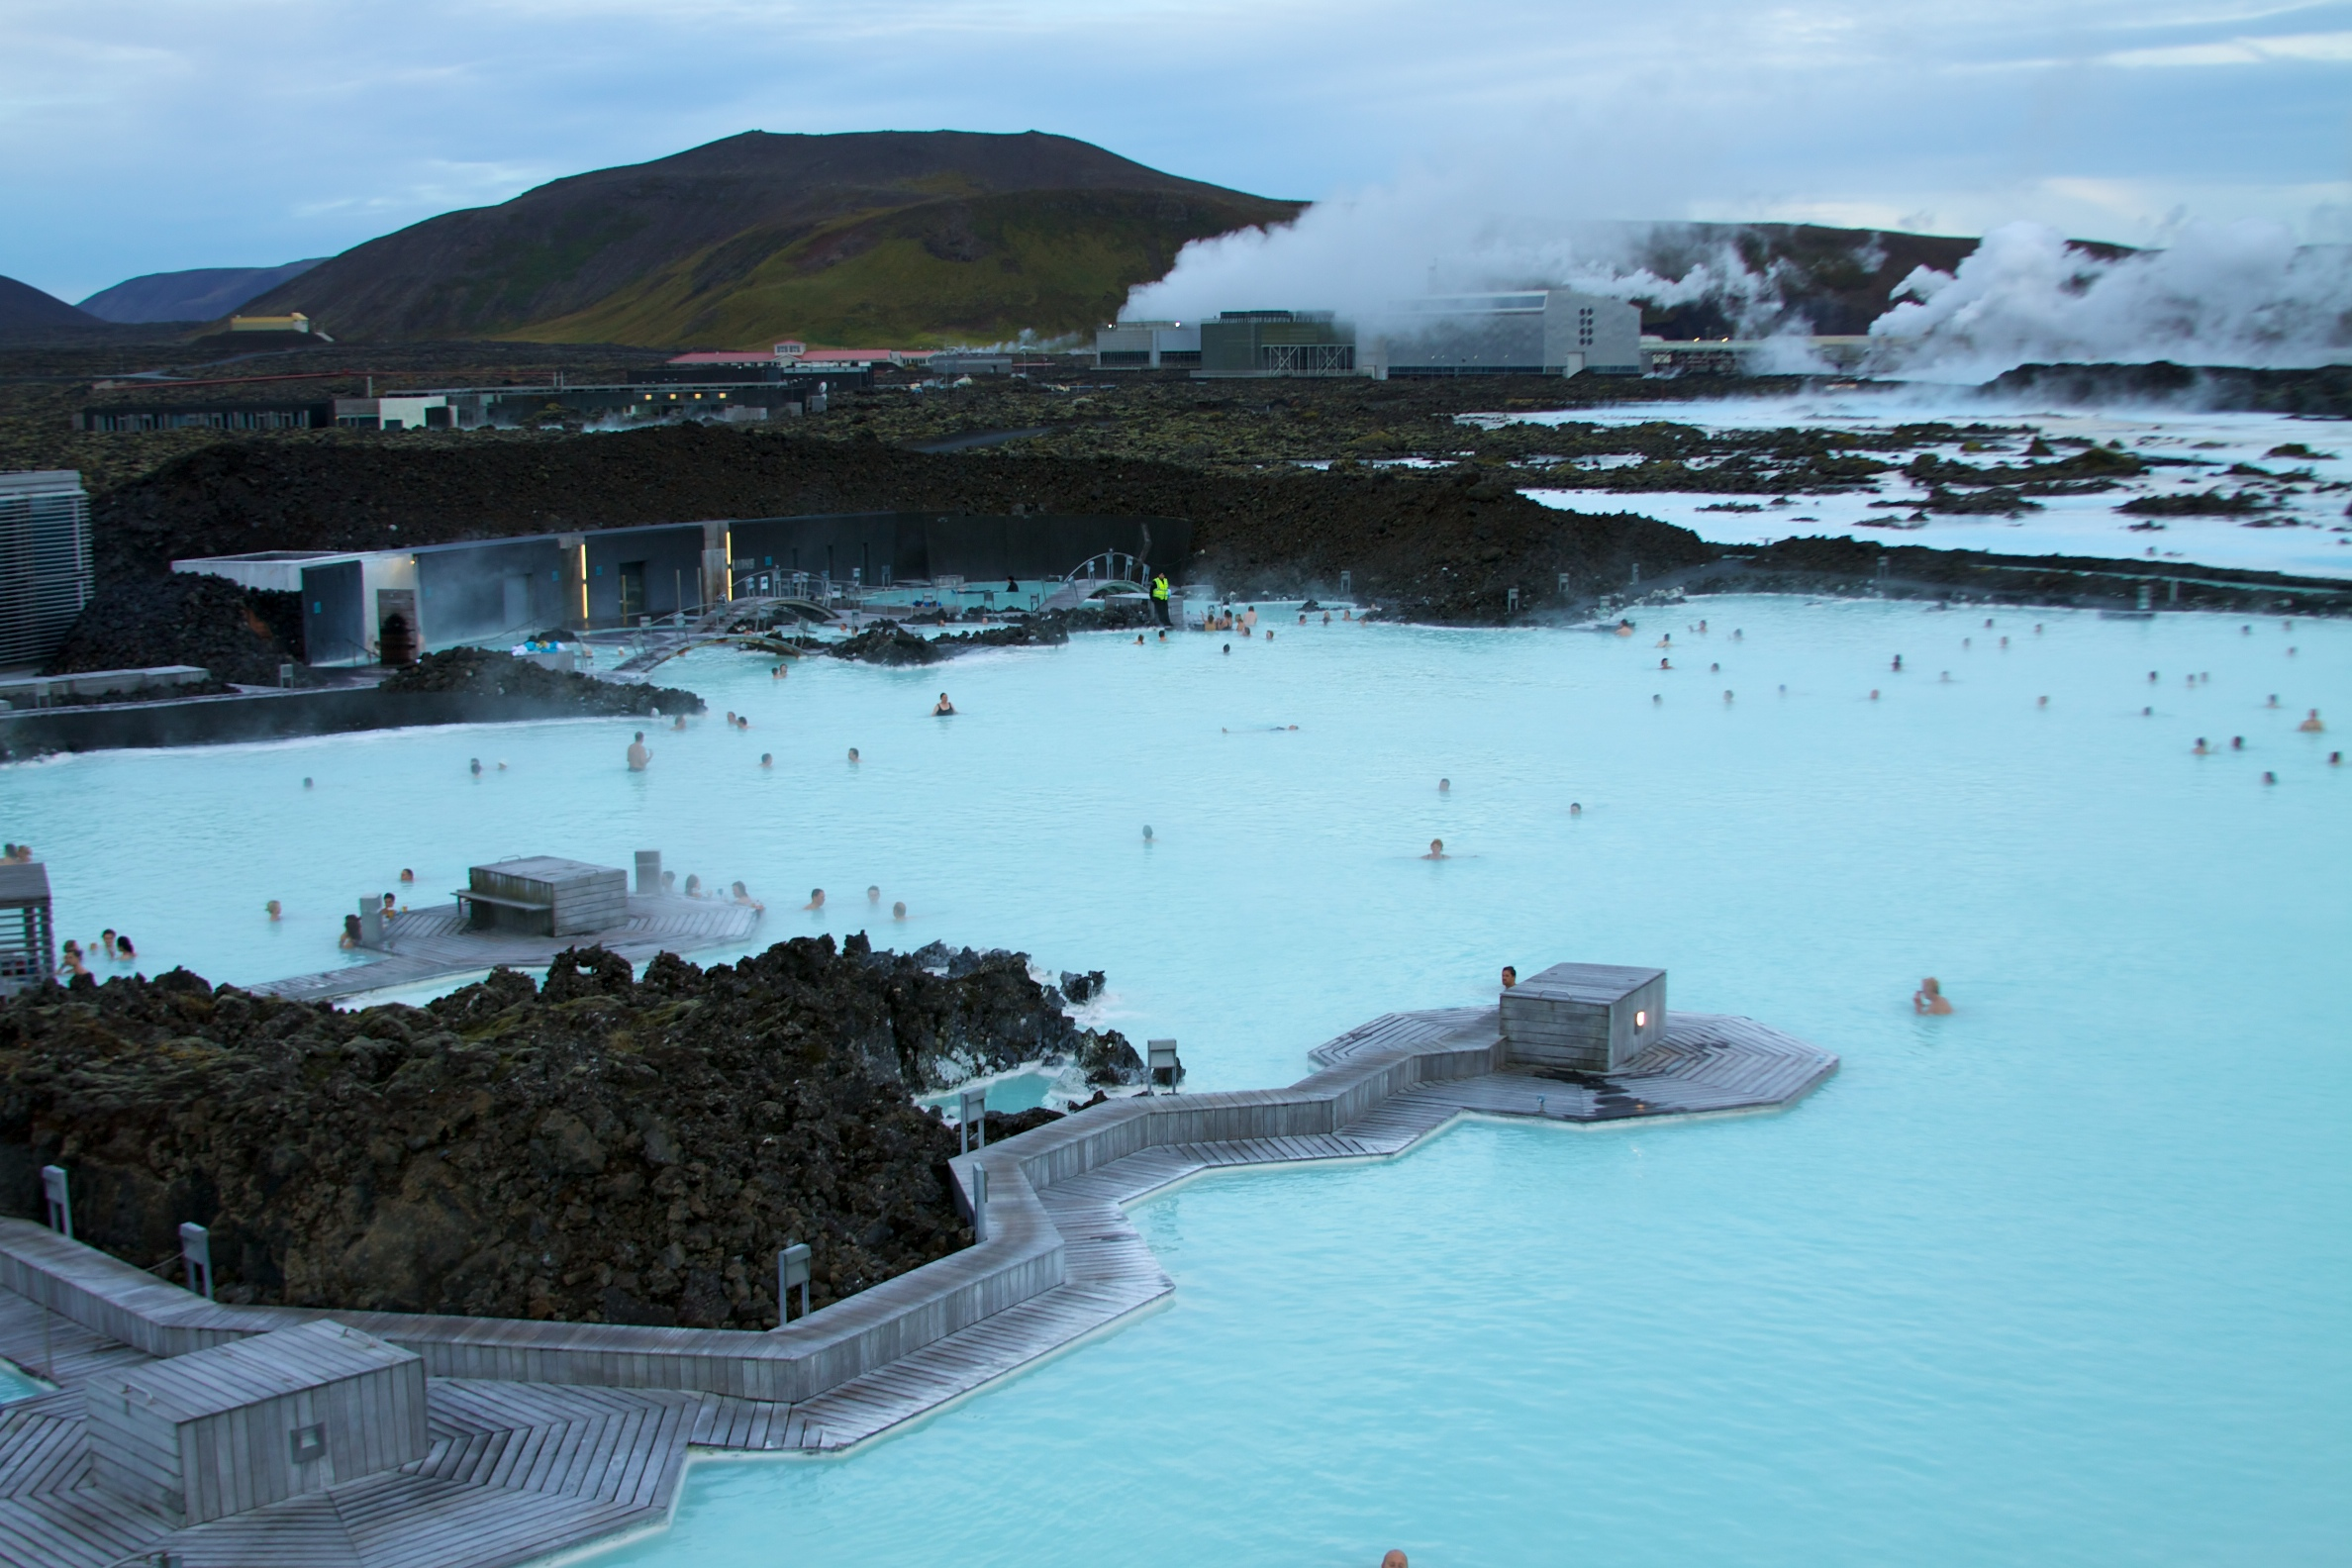 The lovely thermal waters of Iceland's understandably famous Blue Lagoon. The geothermal power plant visible in the back supplies much of the power to Reykjavik, and of course the hot, rejuvinating waters of the Blue Lagoon itself.